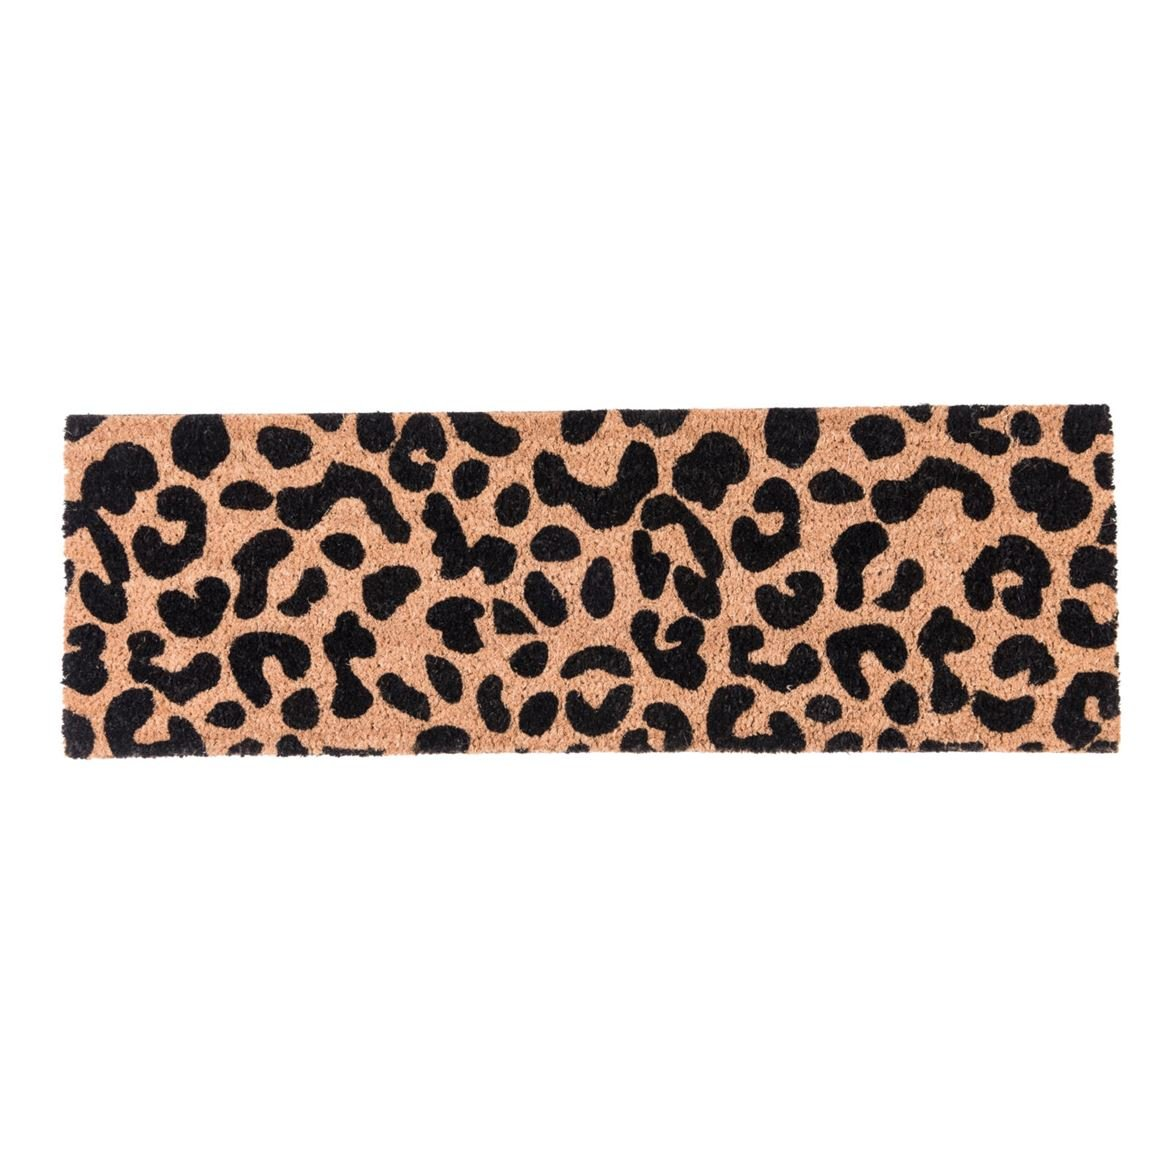 CHEETAH Paillasson brun clair Larg. 25 x Long. 75 cm_cheetah-paillasson-brun-clair-larg--25-x-long--75-cm